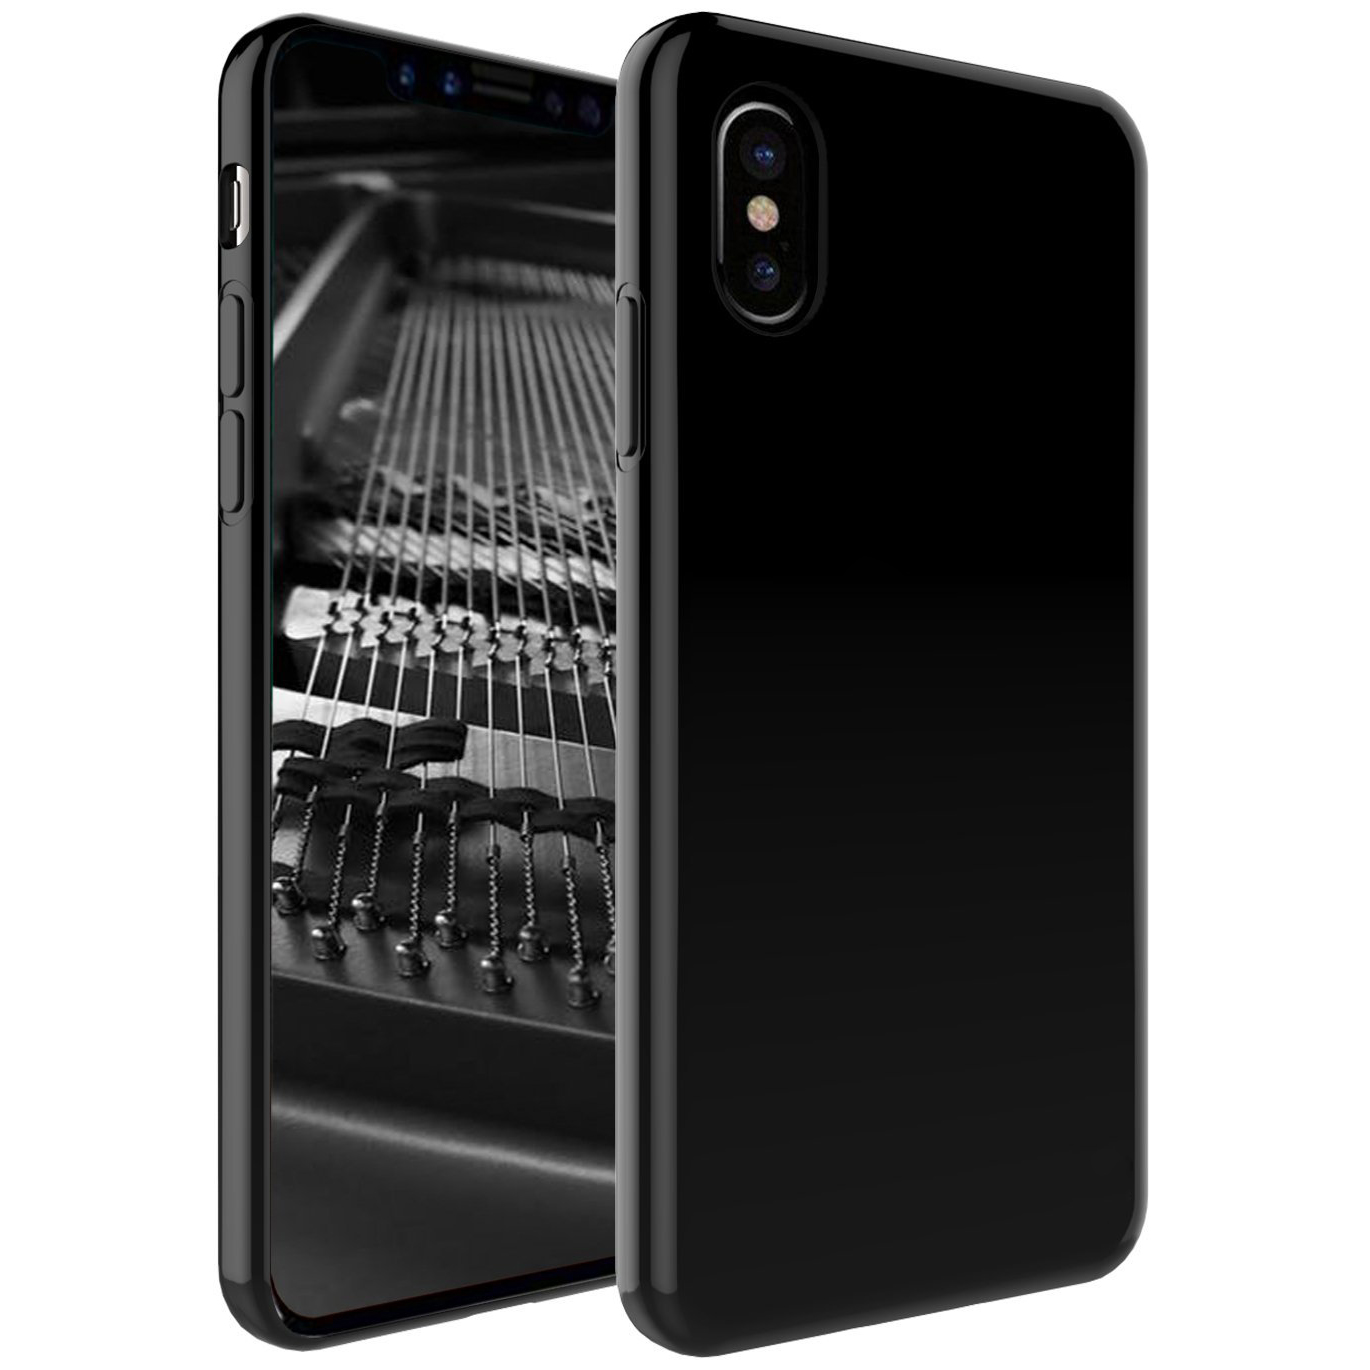 Made for [Apple iPhone X / XS 2018] TPU Case, Slim Flexible Anti-shock Crystal Silicone Protective TPU Gel Skin Case [Black] by Redshield